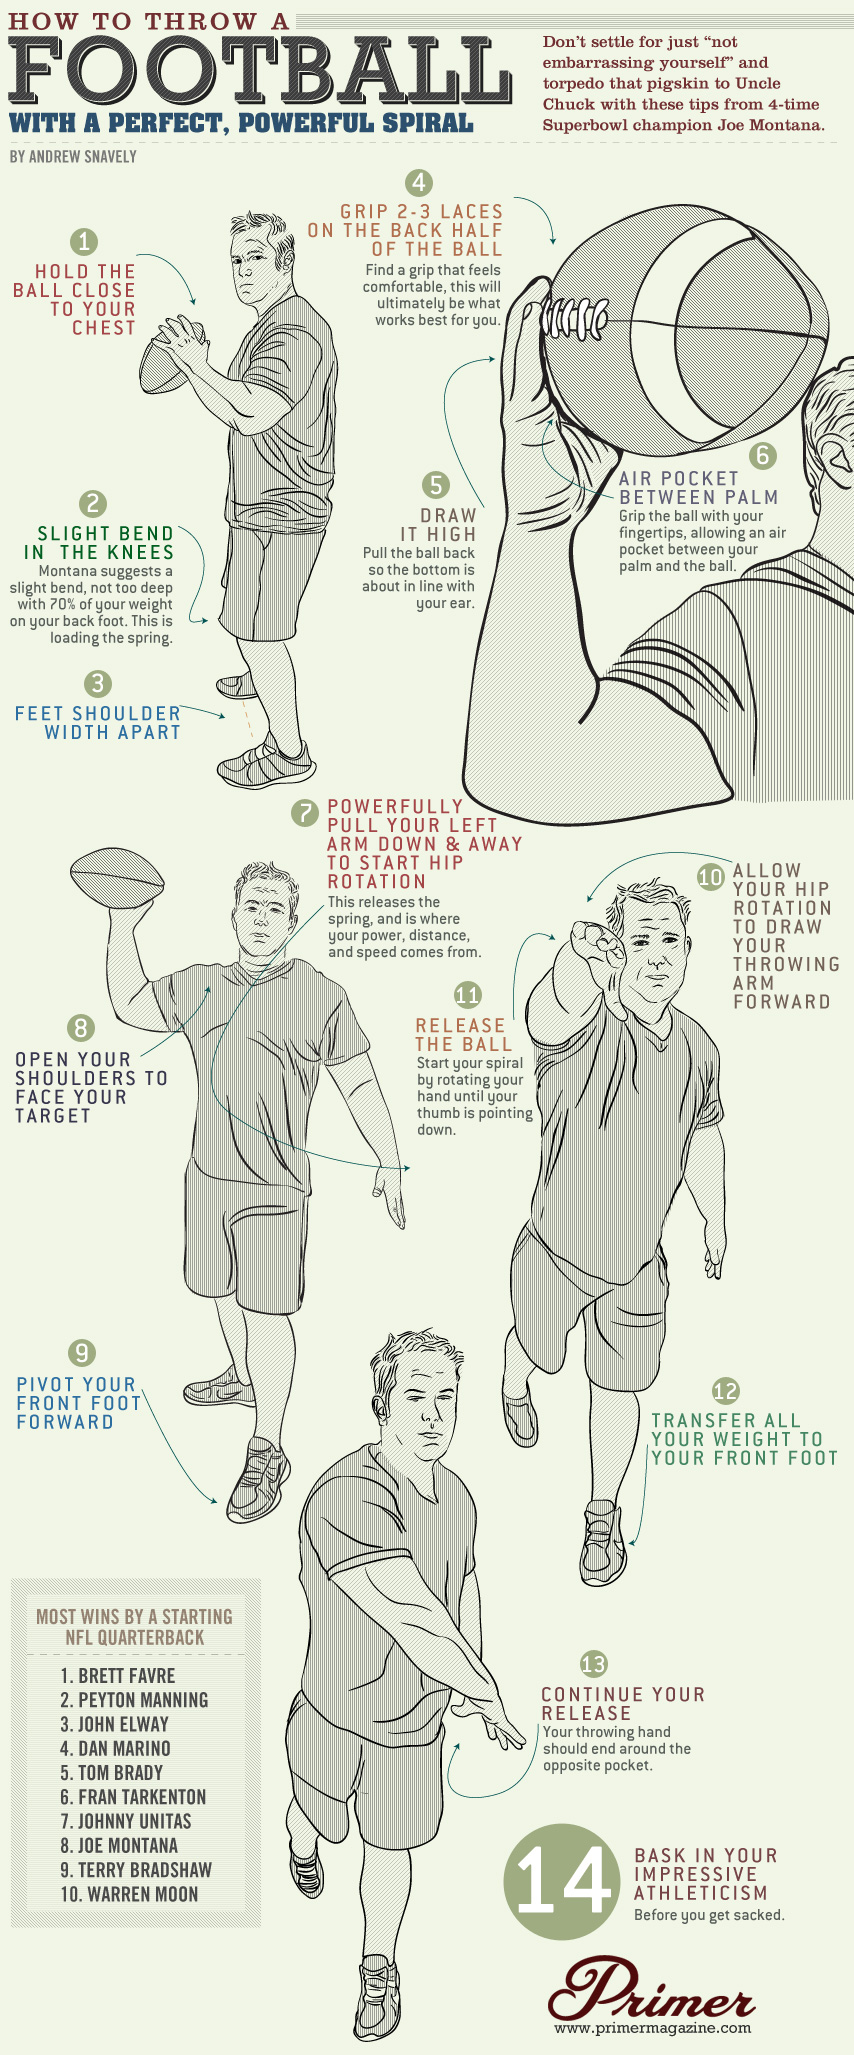 How to throw the ball 70